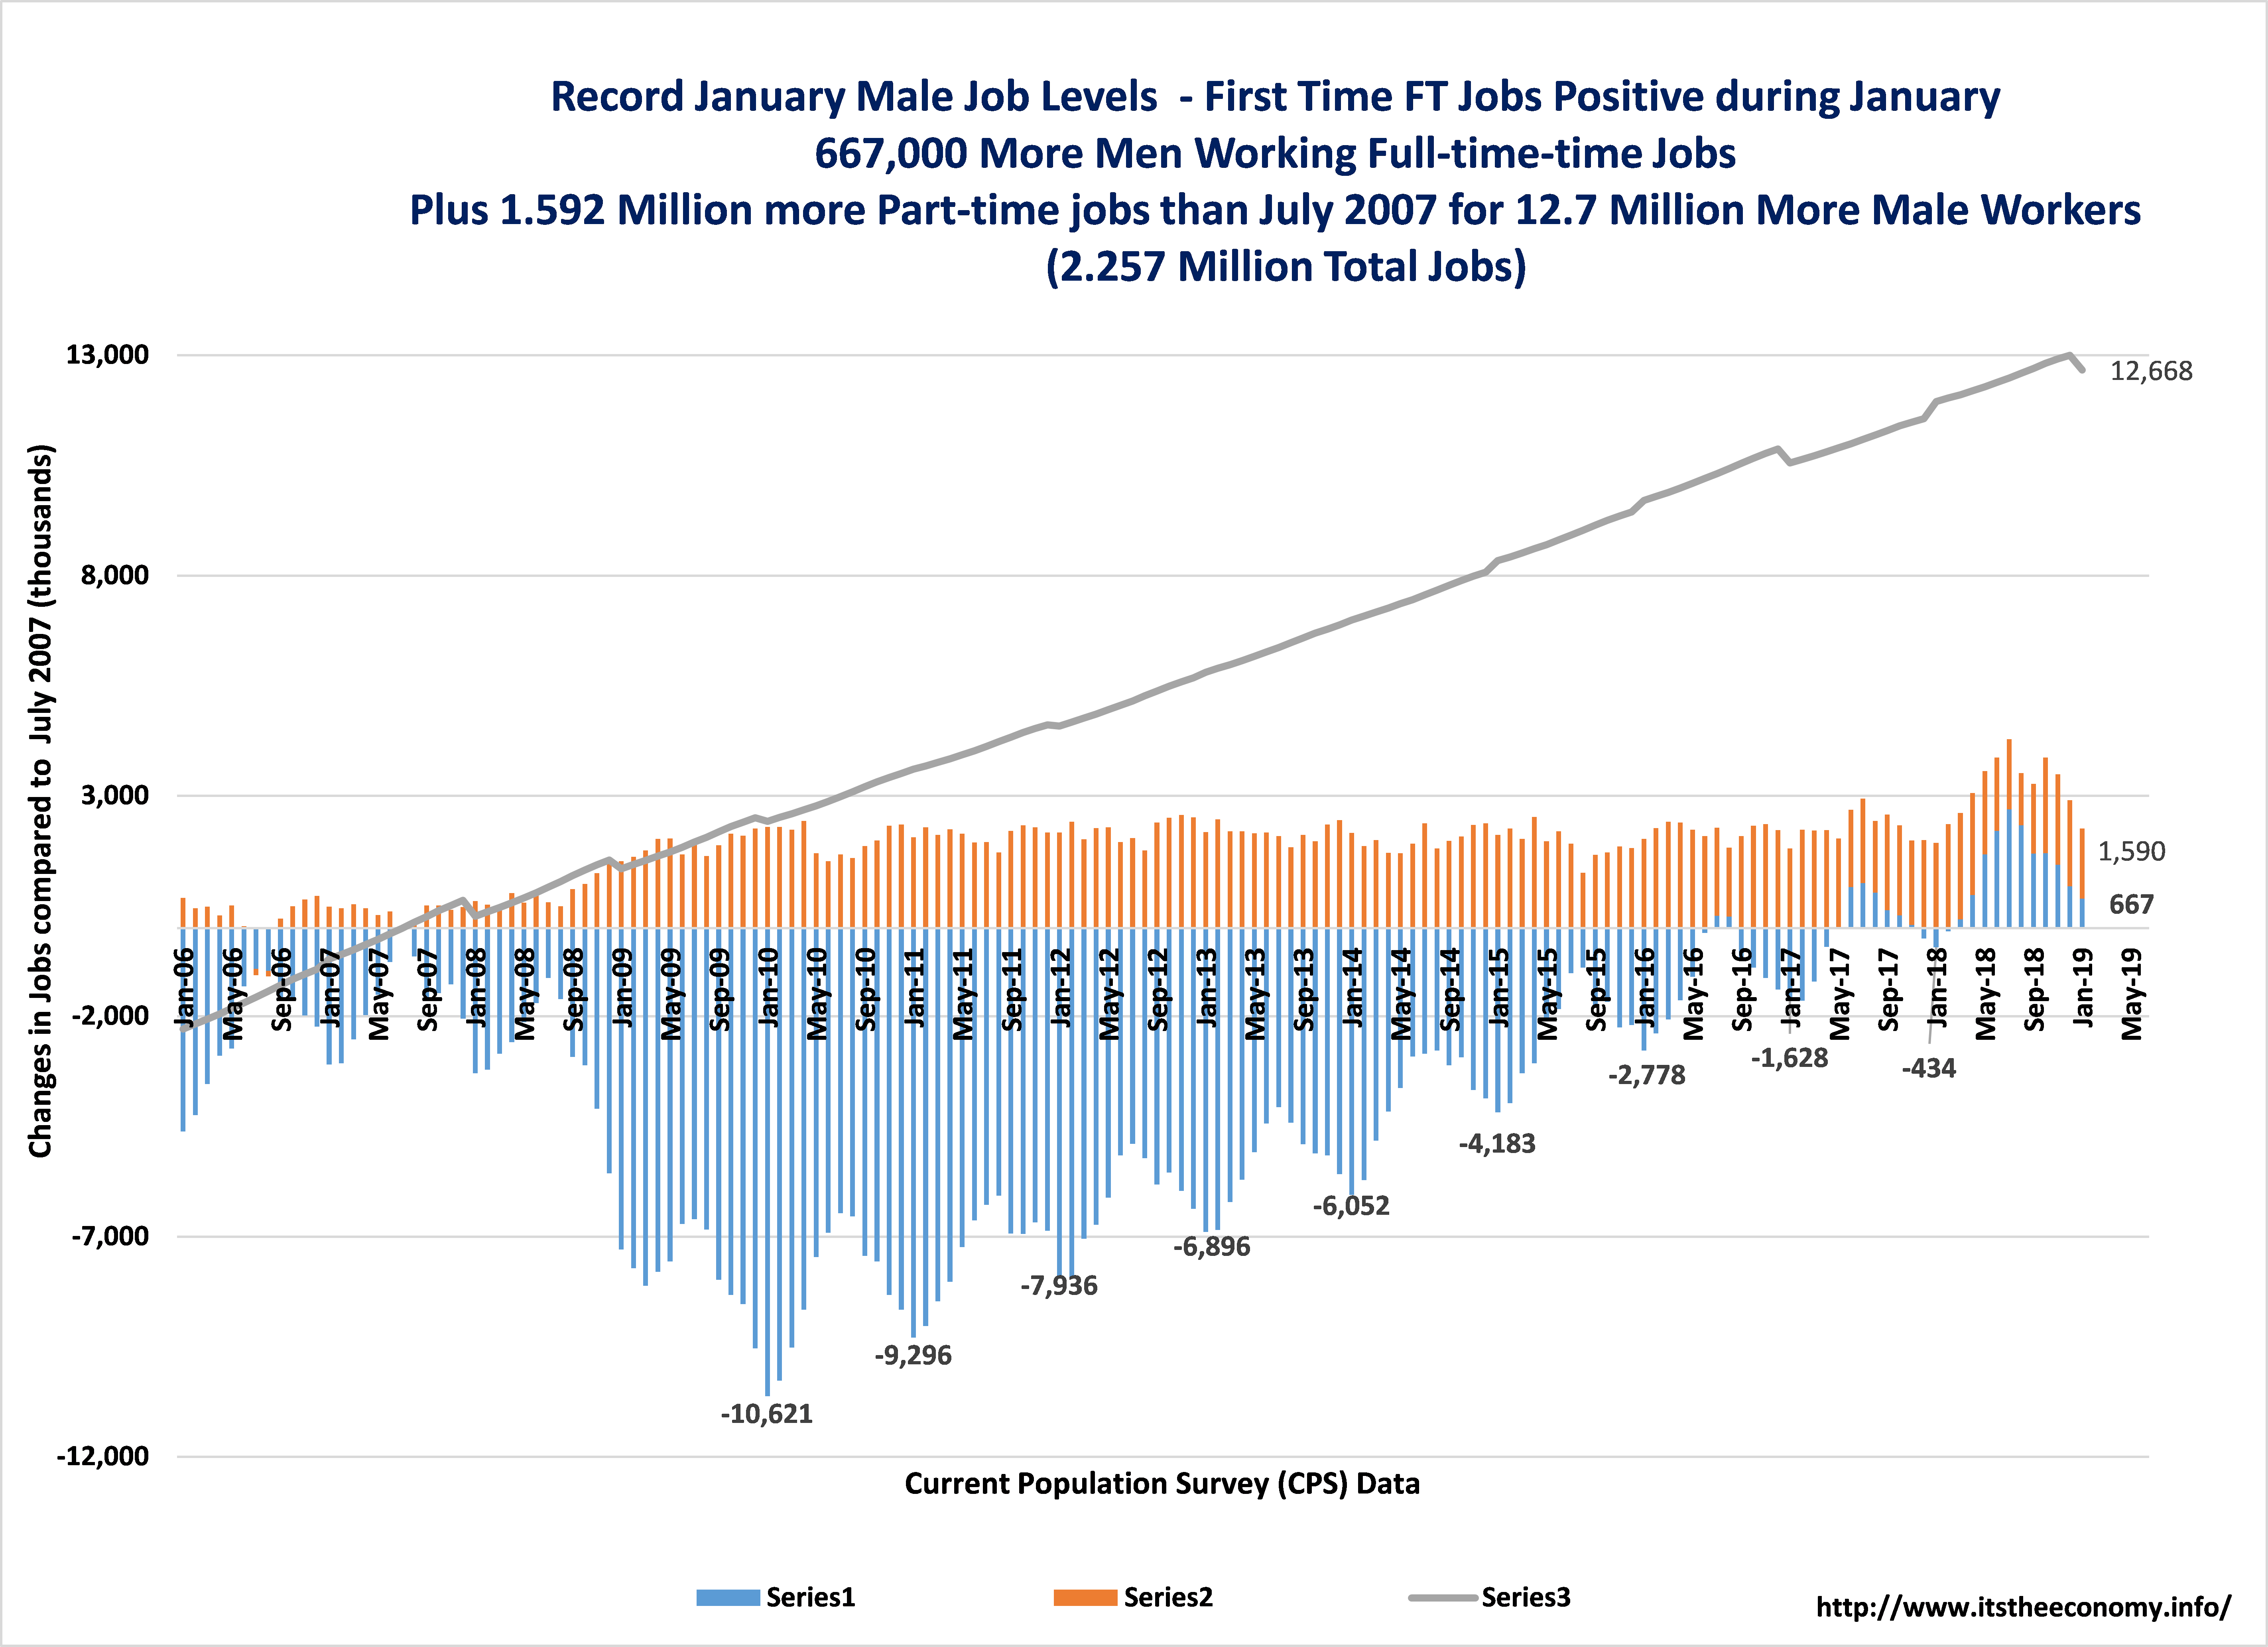 Men lost over 10 million full-time jobs during the Great Recession. It took until the Summer of 2016 to recover all of those lost jobs, before they lost them during the Fall of 2016. It wasn't until January 2018 that all of the lost full-time jobs were preserved.